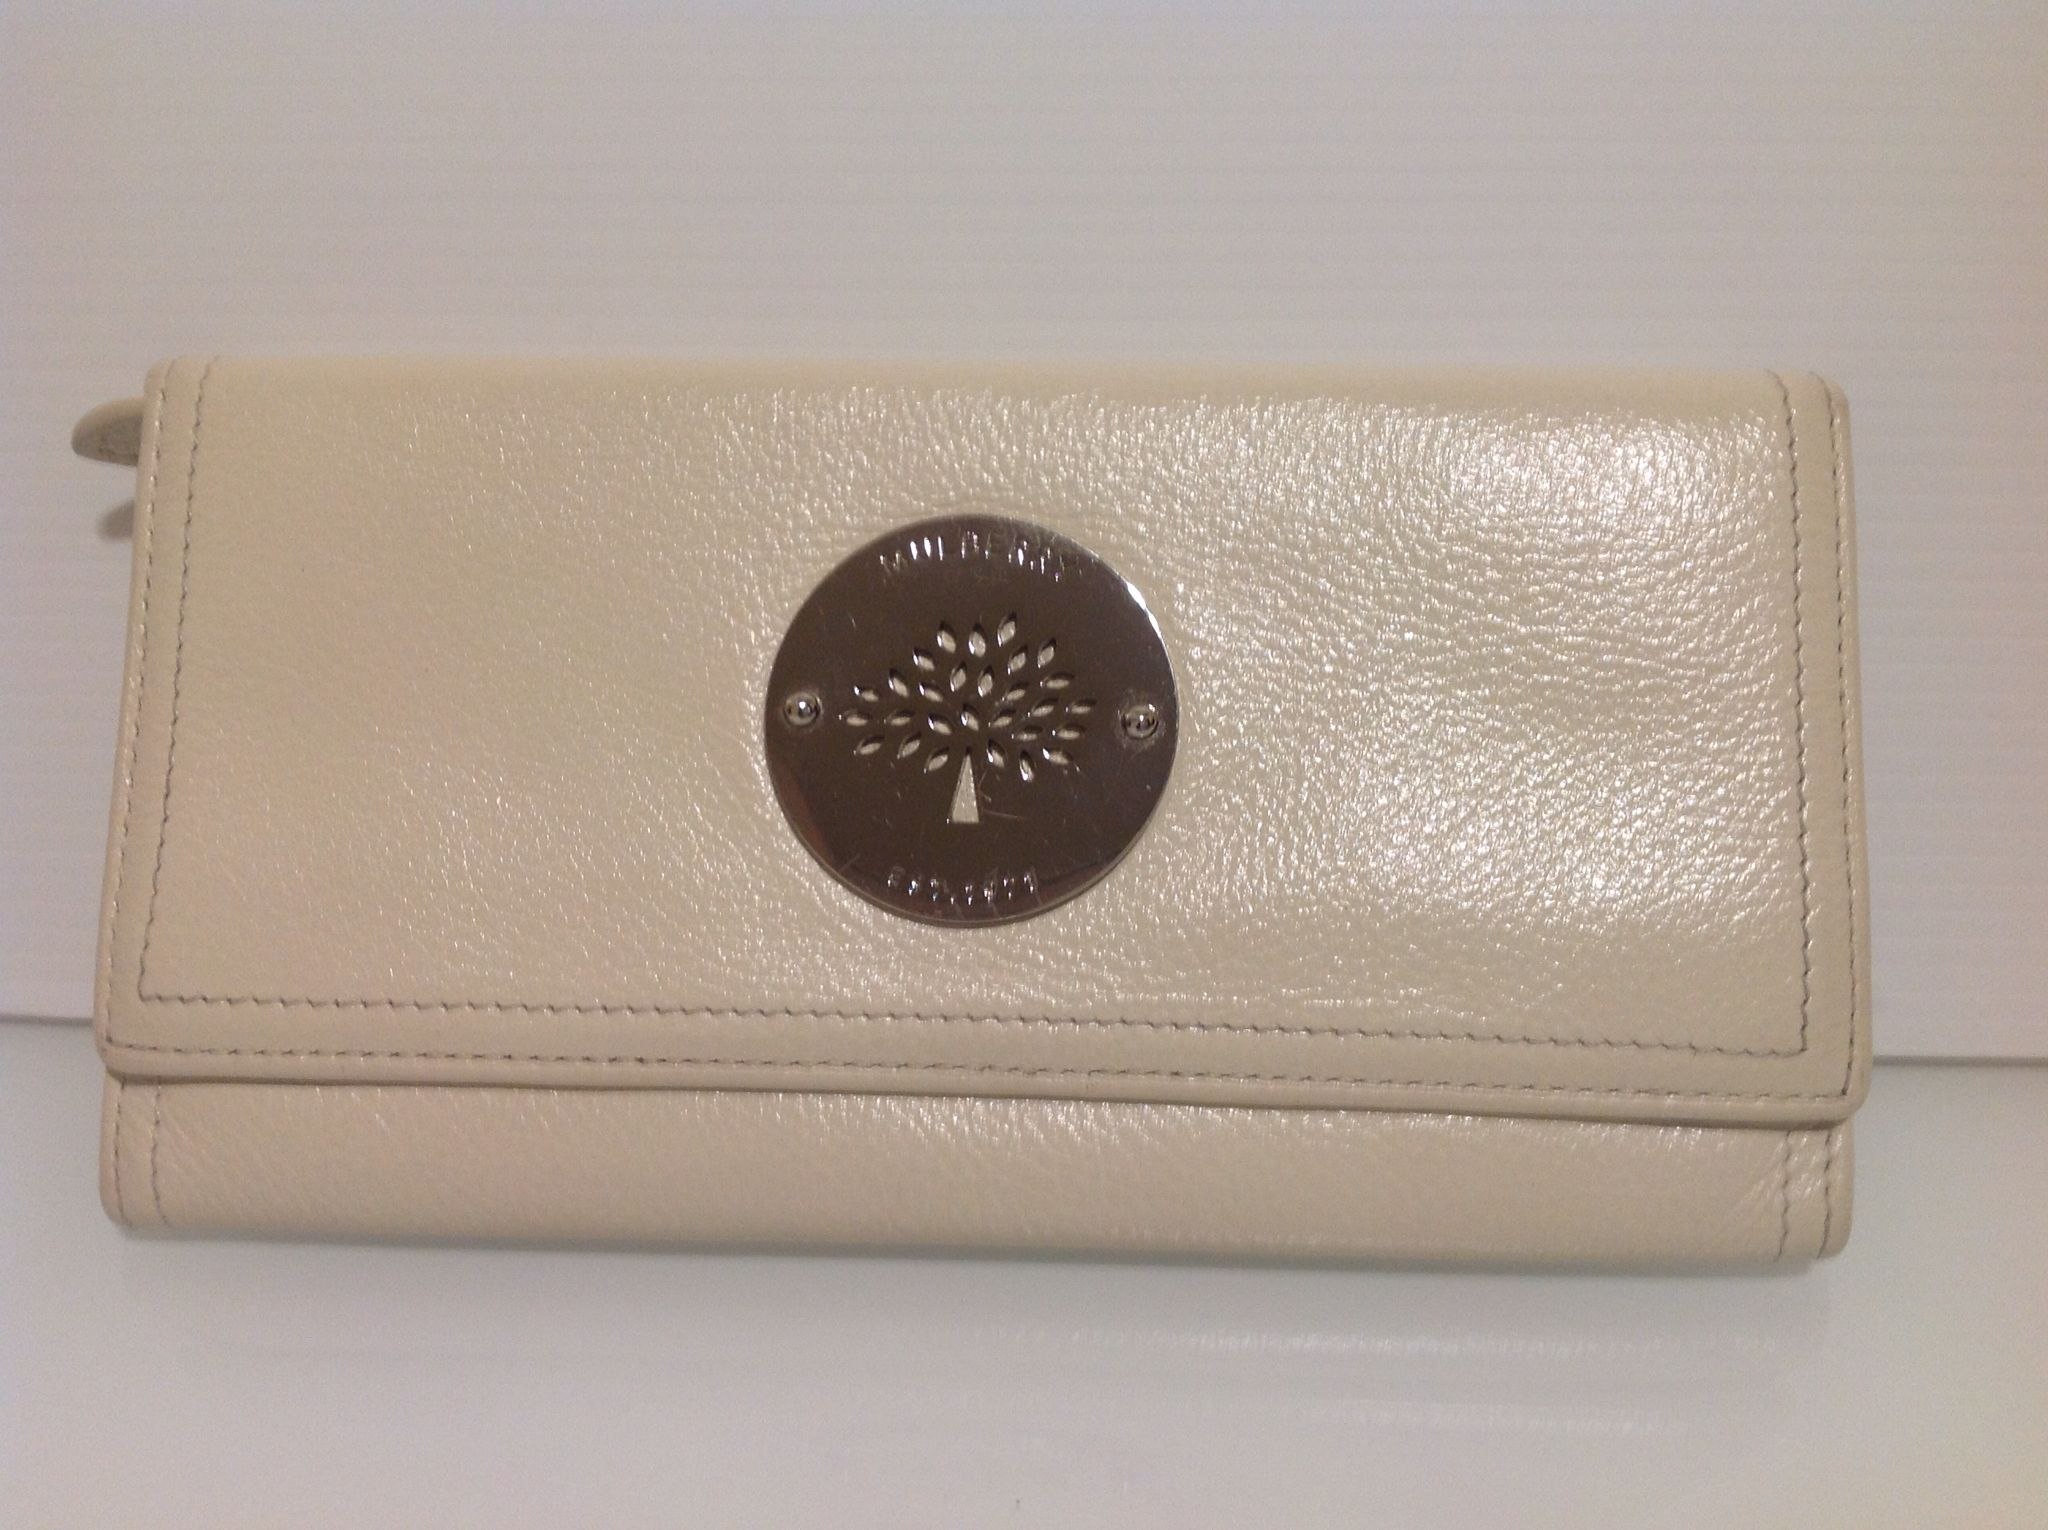 Authentic Mulberry Daria Continental Leather Purse Wallet In